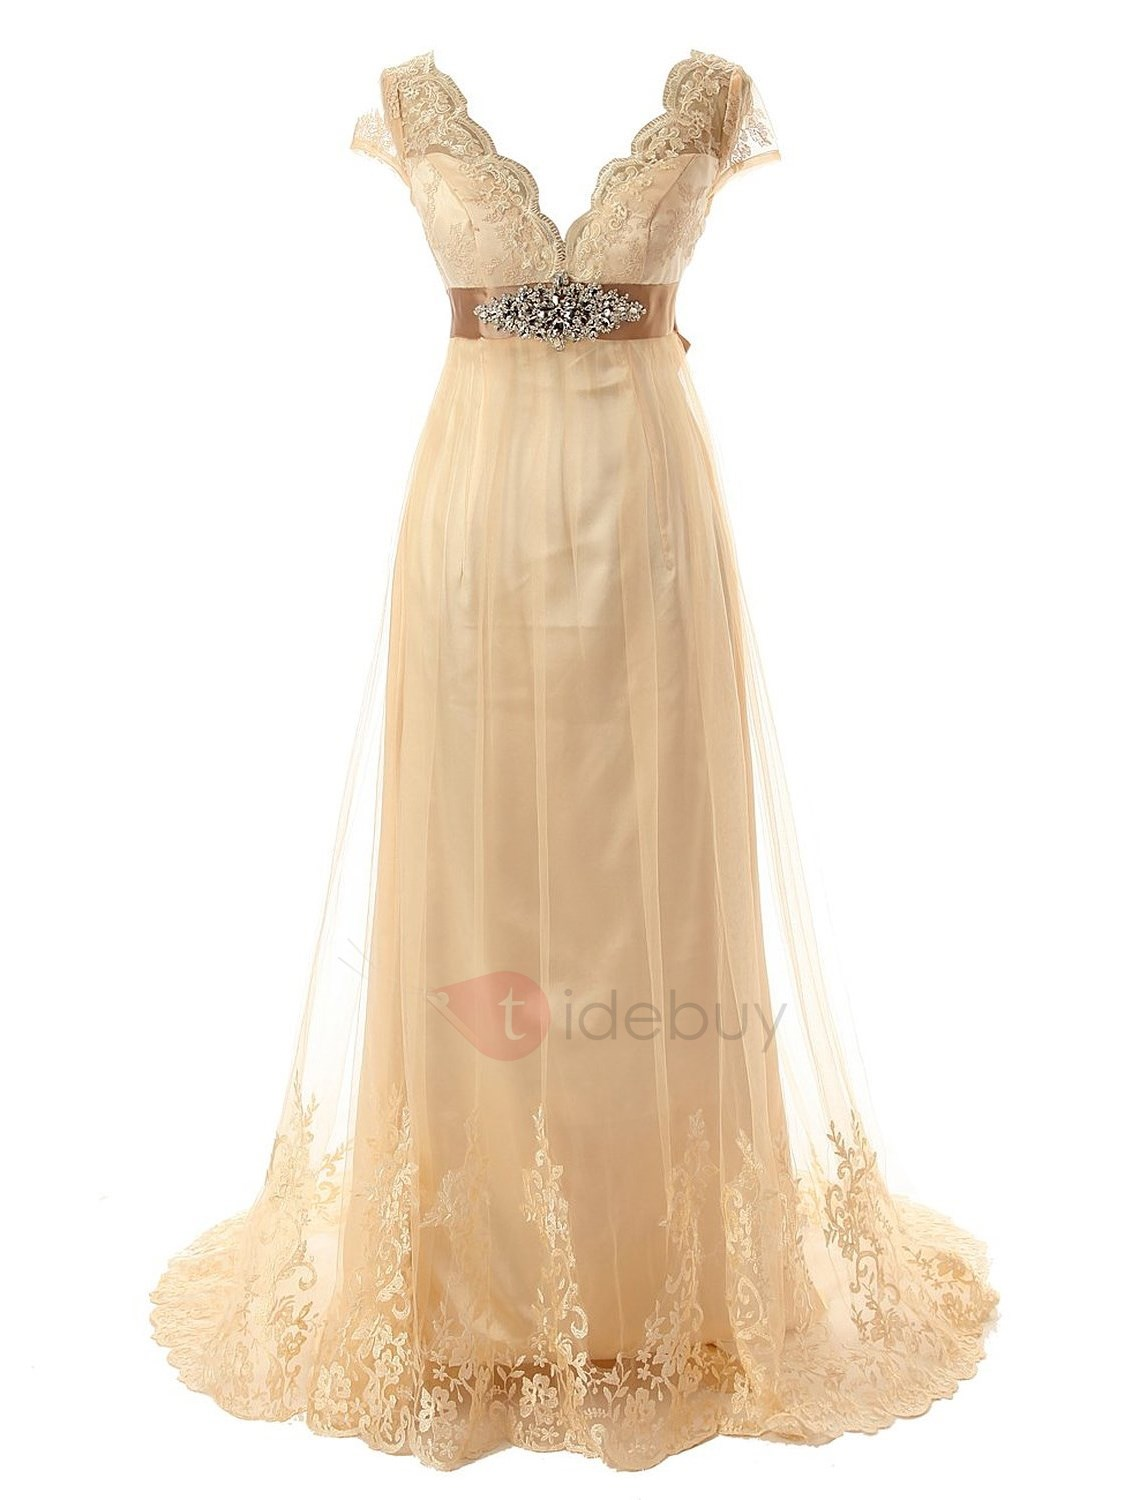 Appliques empire waist plus size wedding dress for Empire waist plus size wedding dress